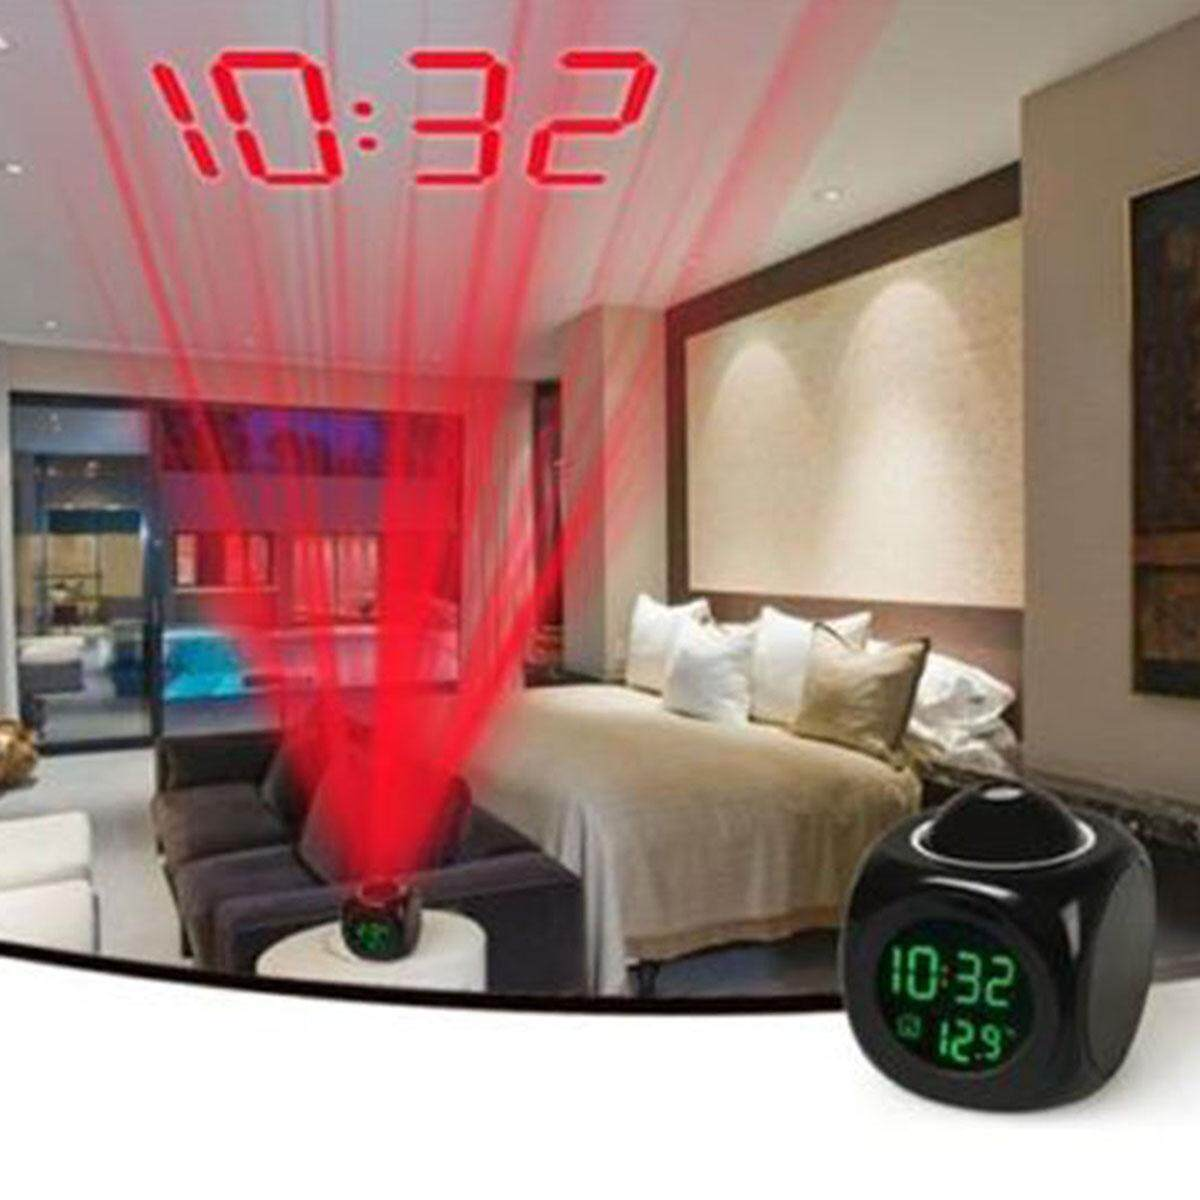 Digital LCD PROJECTION Desk Alarm Clock Voice Prompt Thermometer With Snooze Function